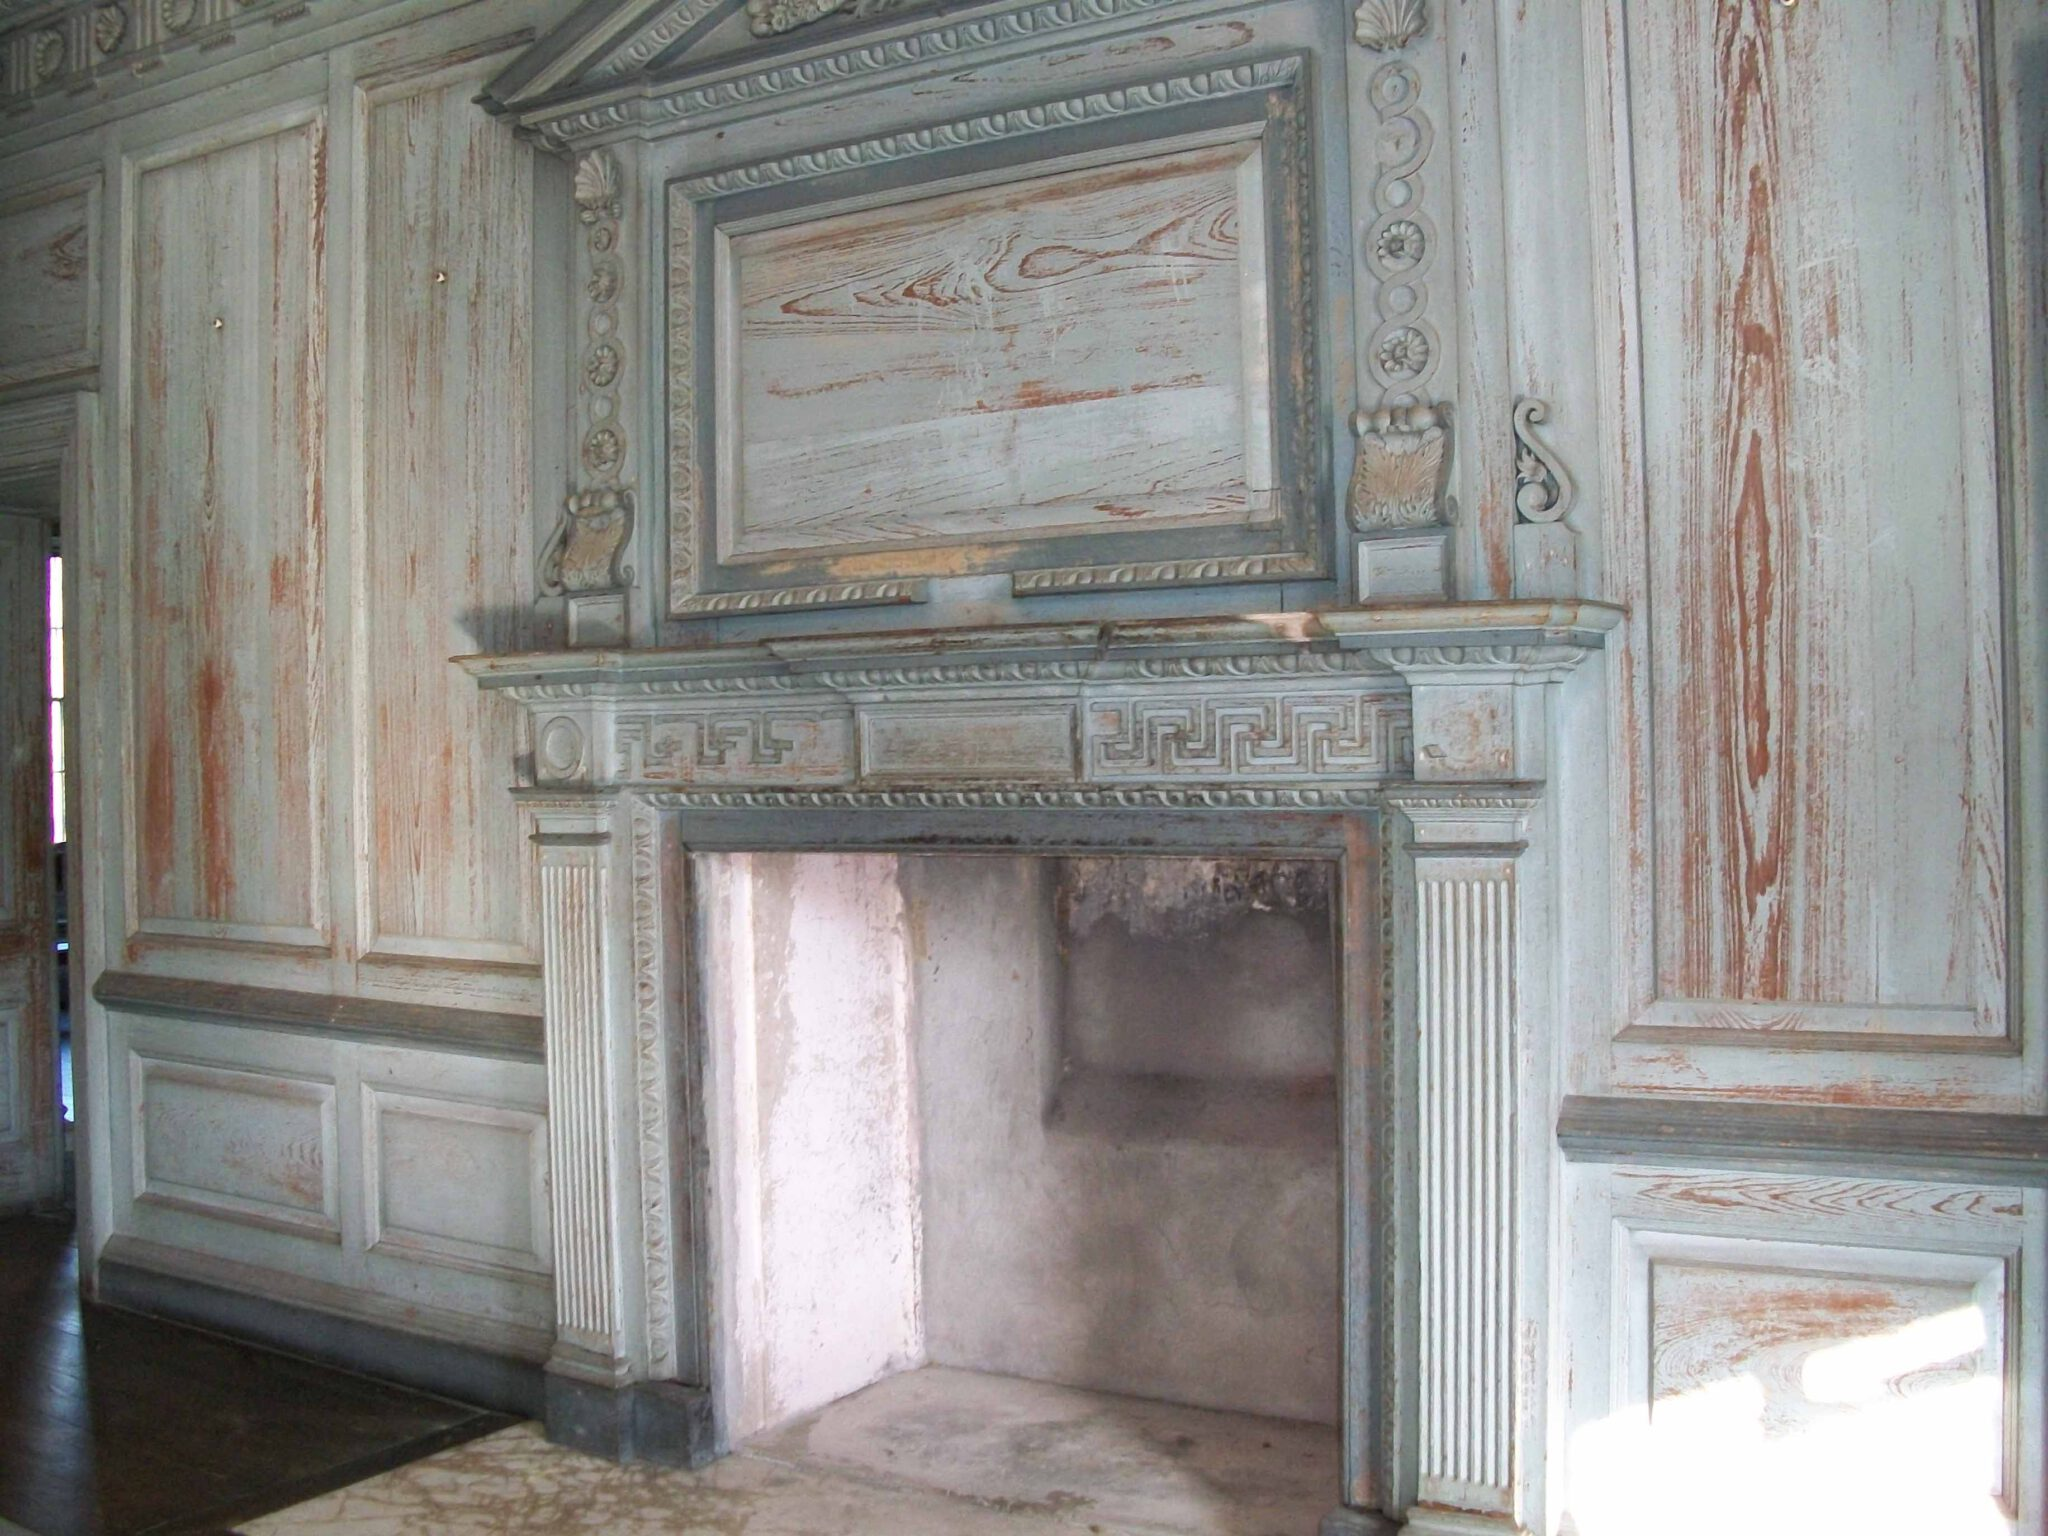 The paint on the walls of The Great Hall's paneling is being preserved with cutting-edge techniques. Image courtesy of South Carolina Pioneers.